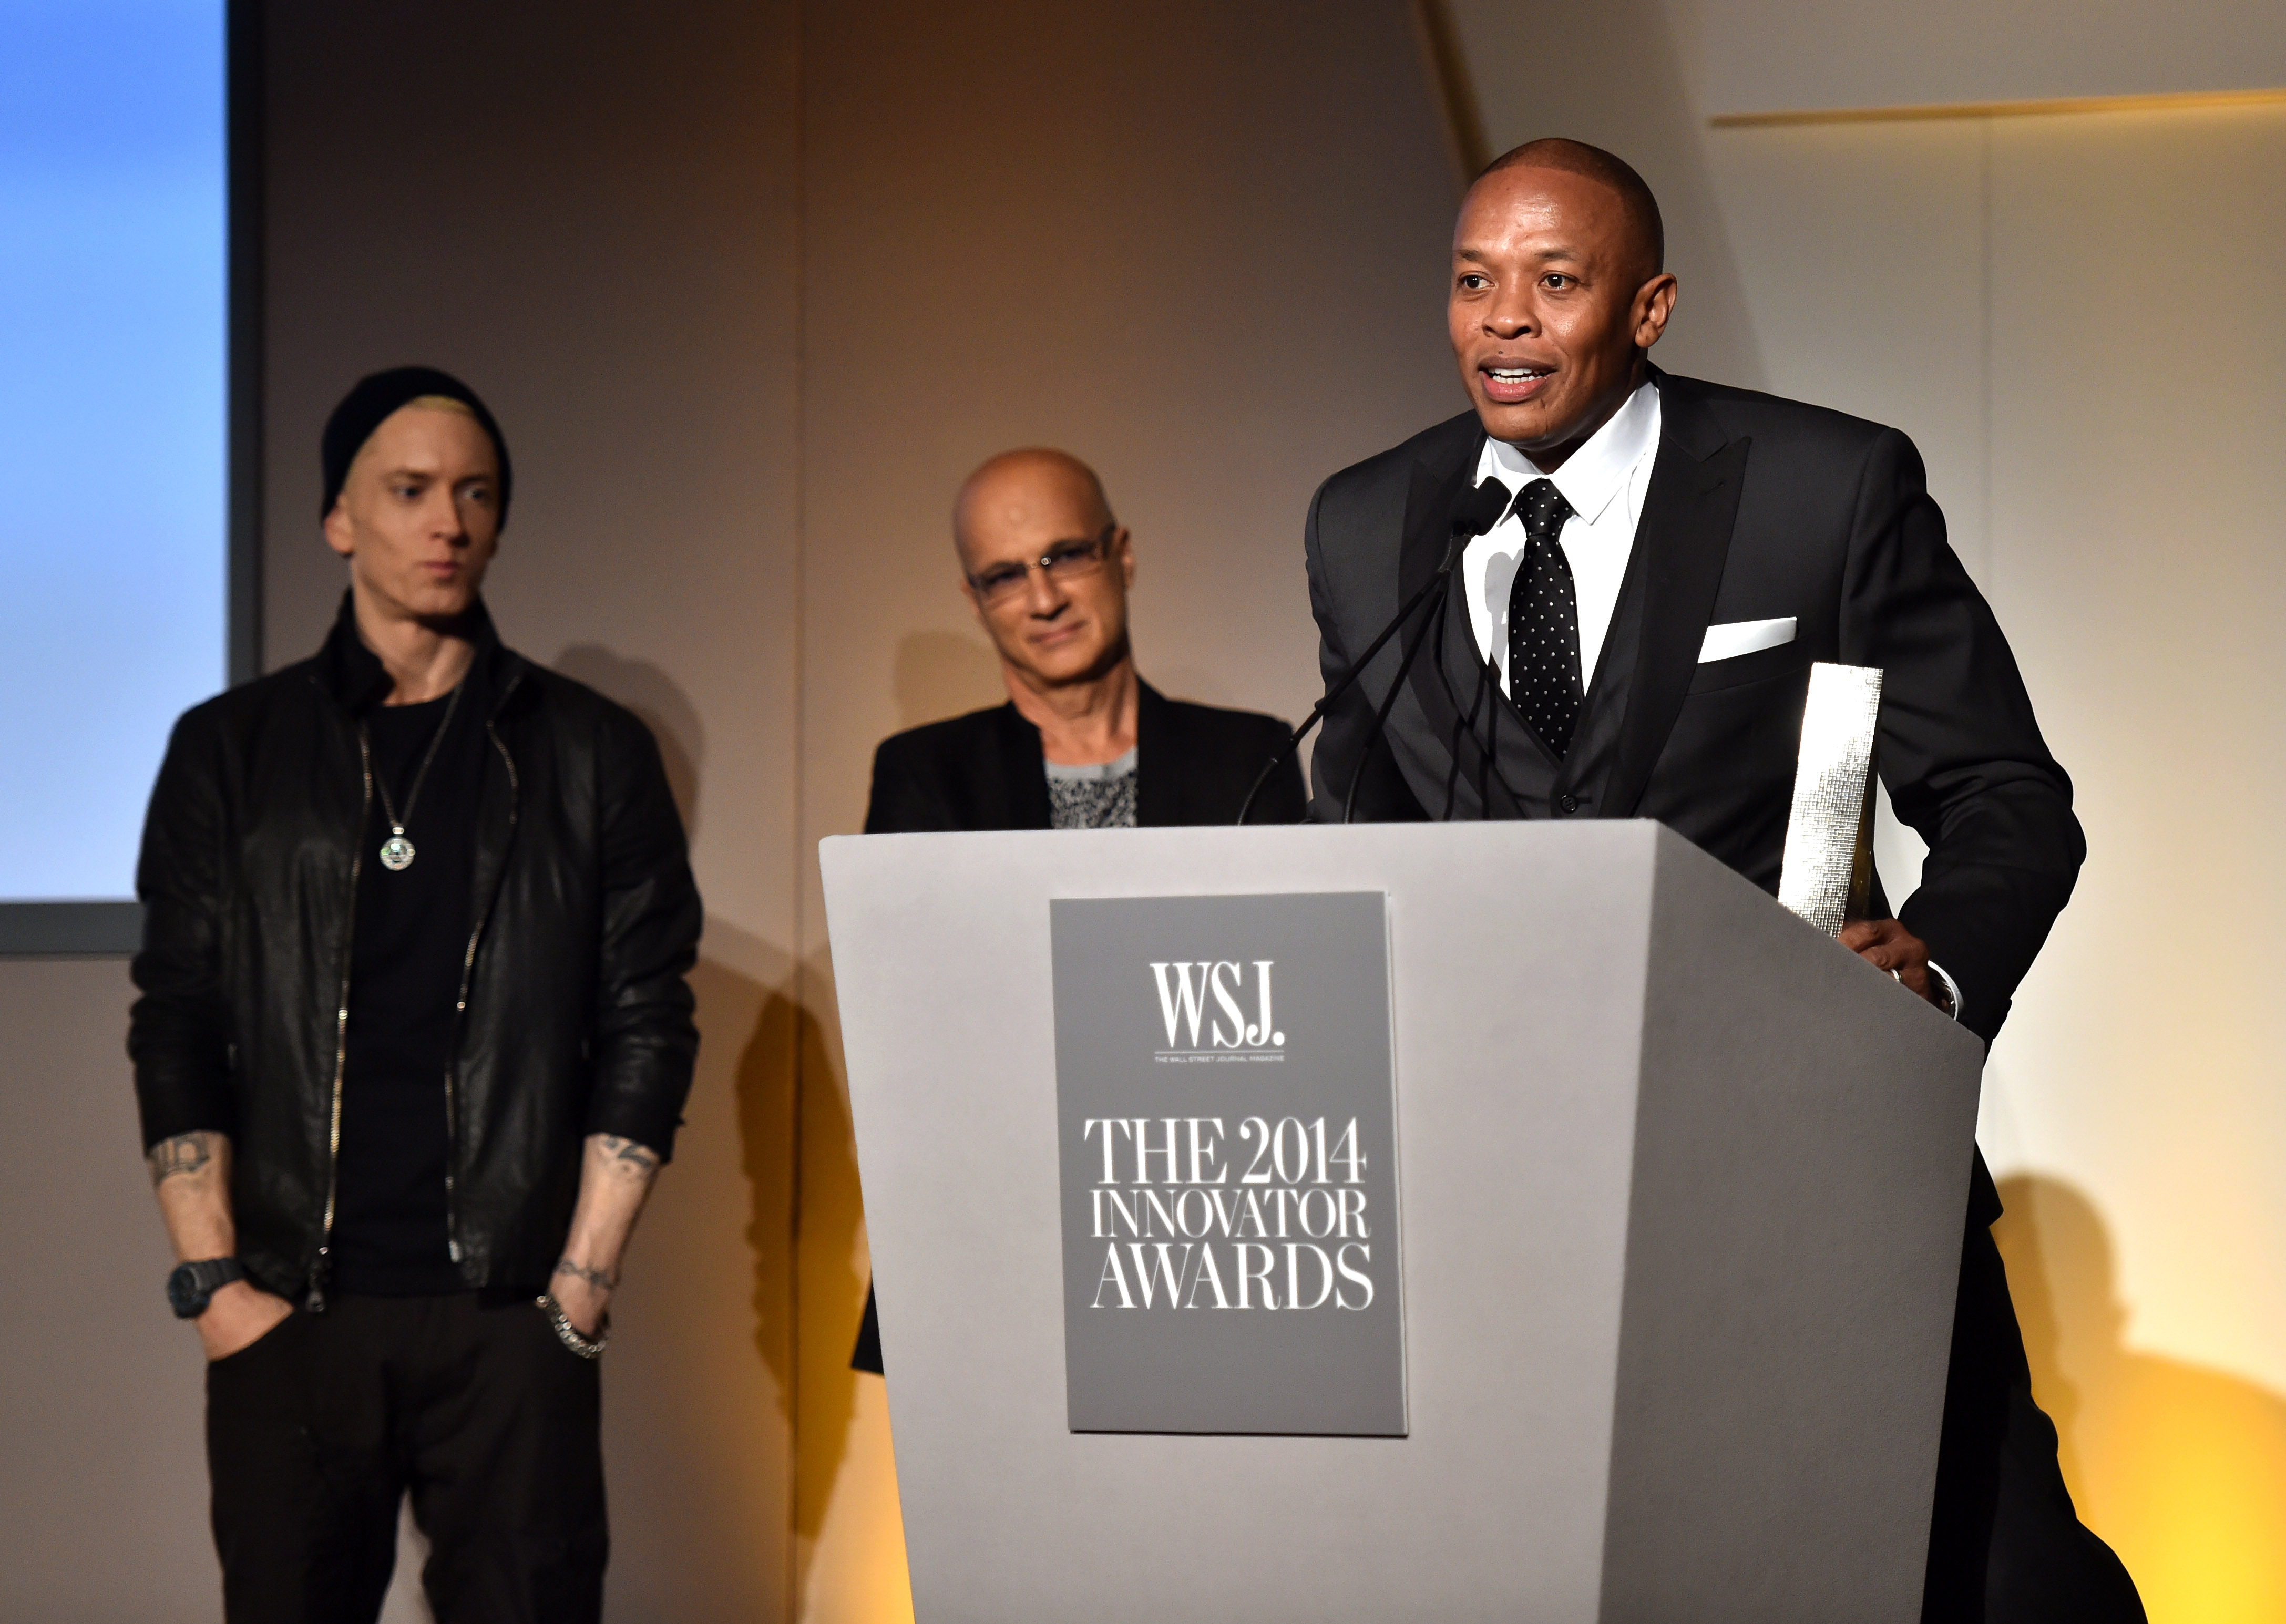 Dr. Dre Made More Money This Year Than Any Musician Ever